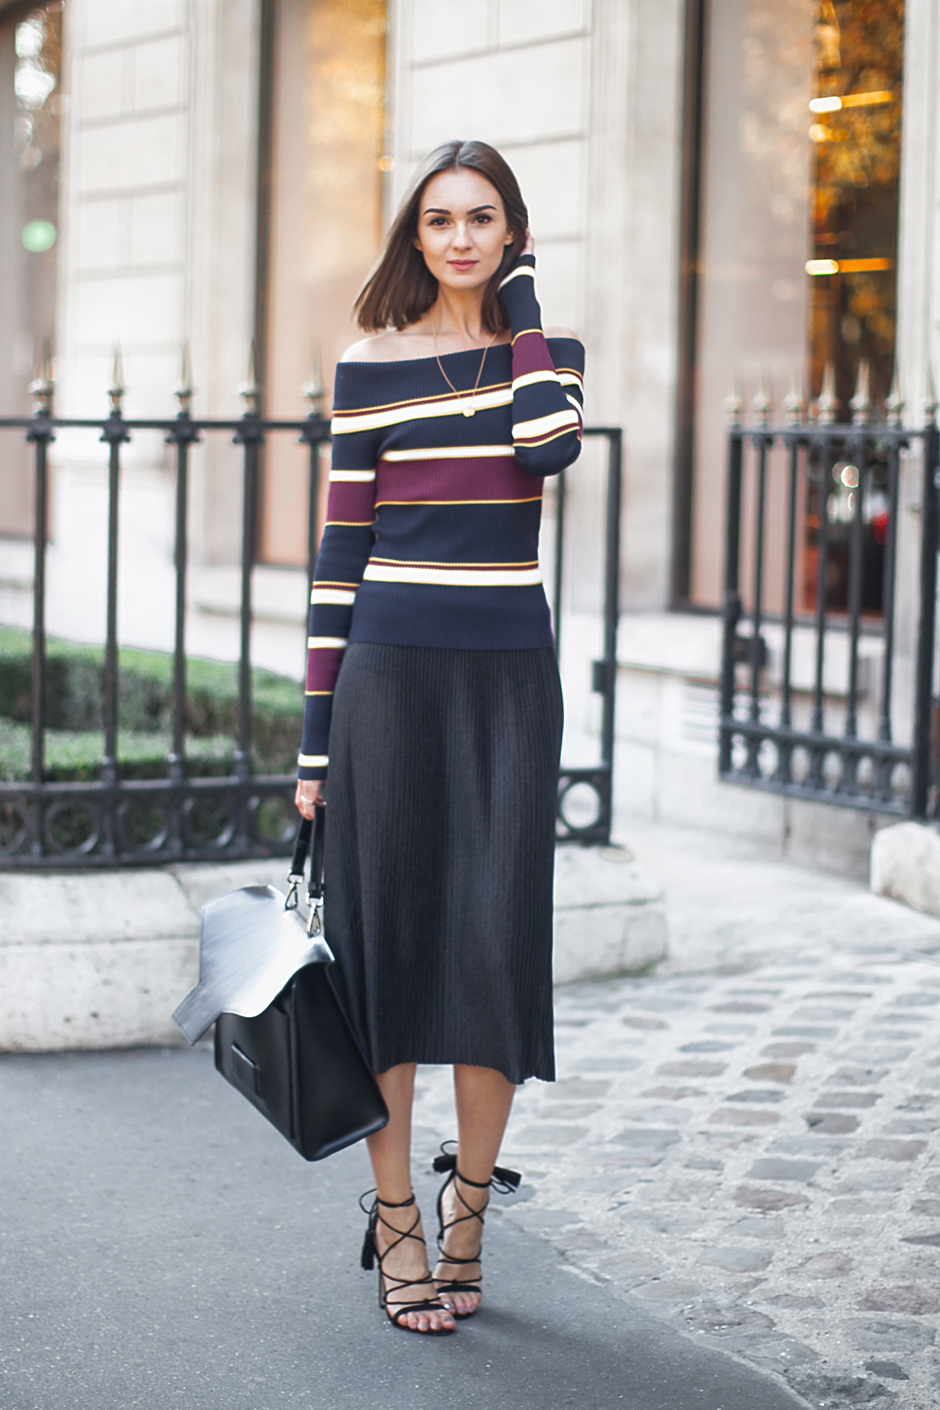 pleated-skirt-fashion-trend-fall-2015-outfit-street-style